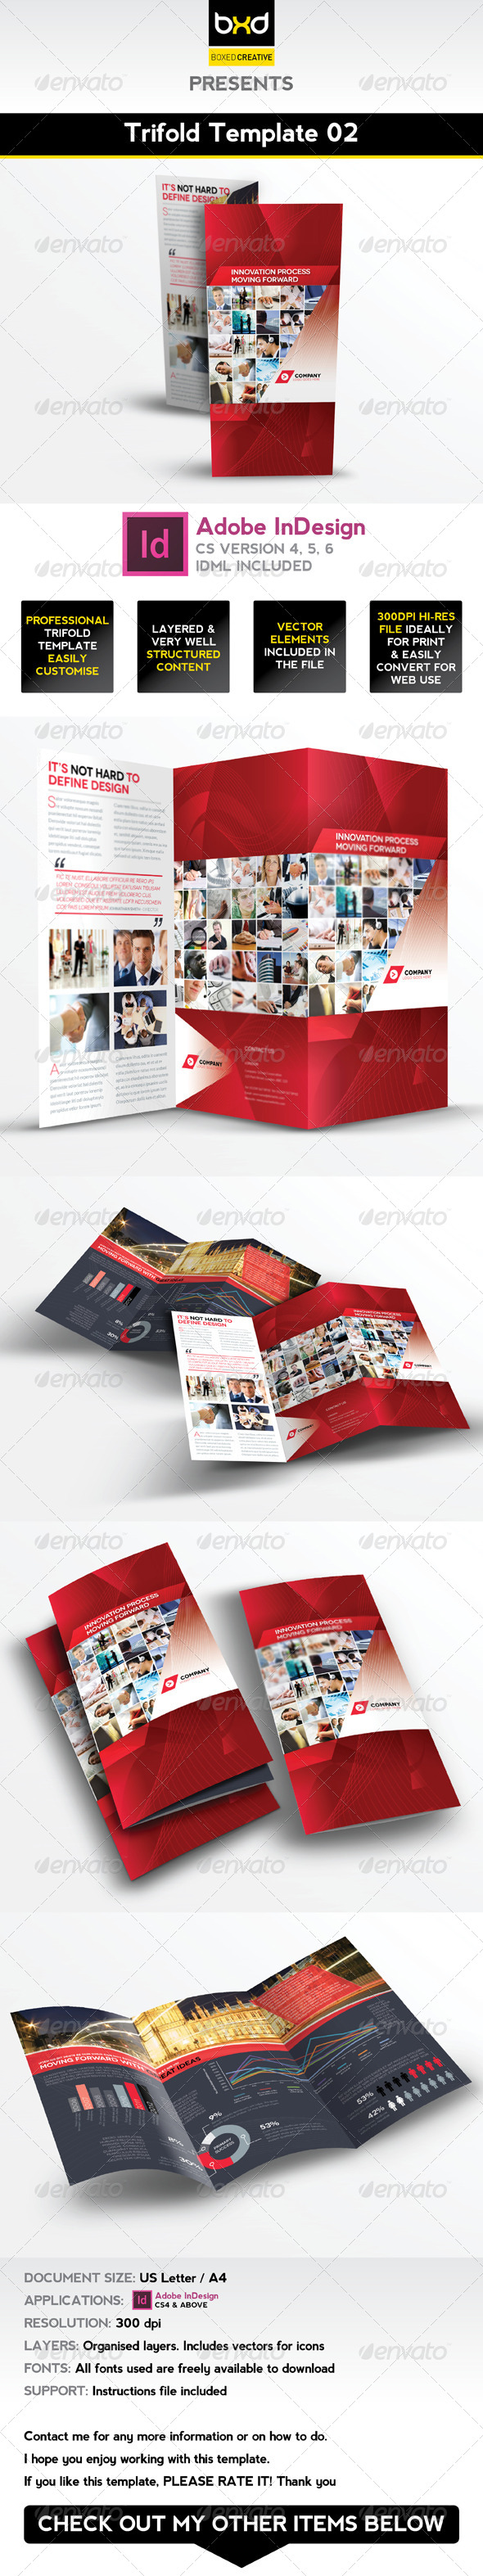 GraphicRiver Trifold Brochure Template 02 InDesign Layout 4793005